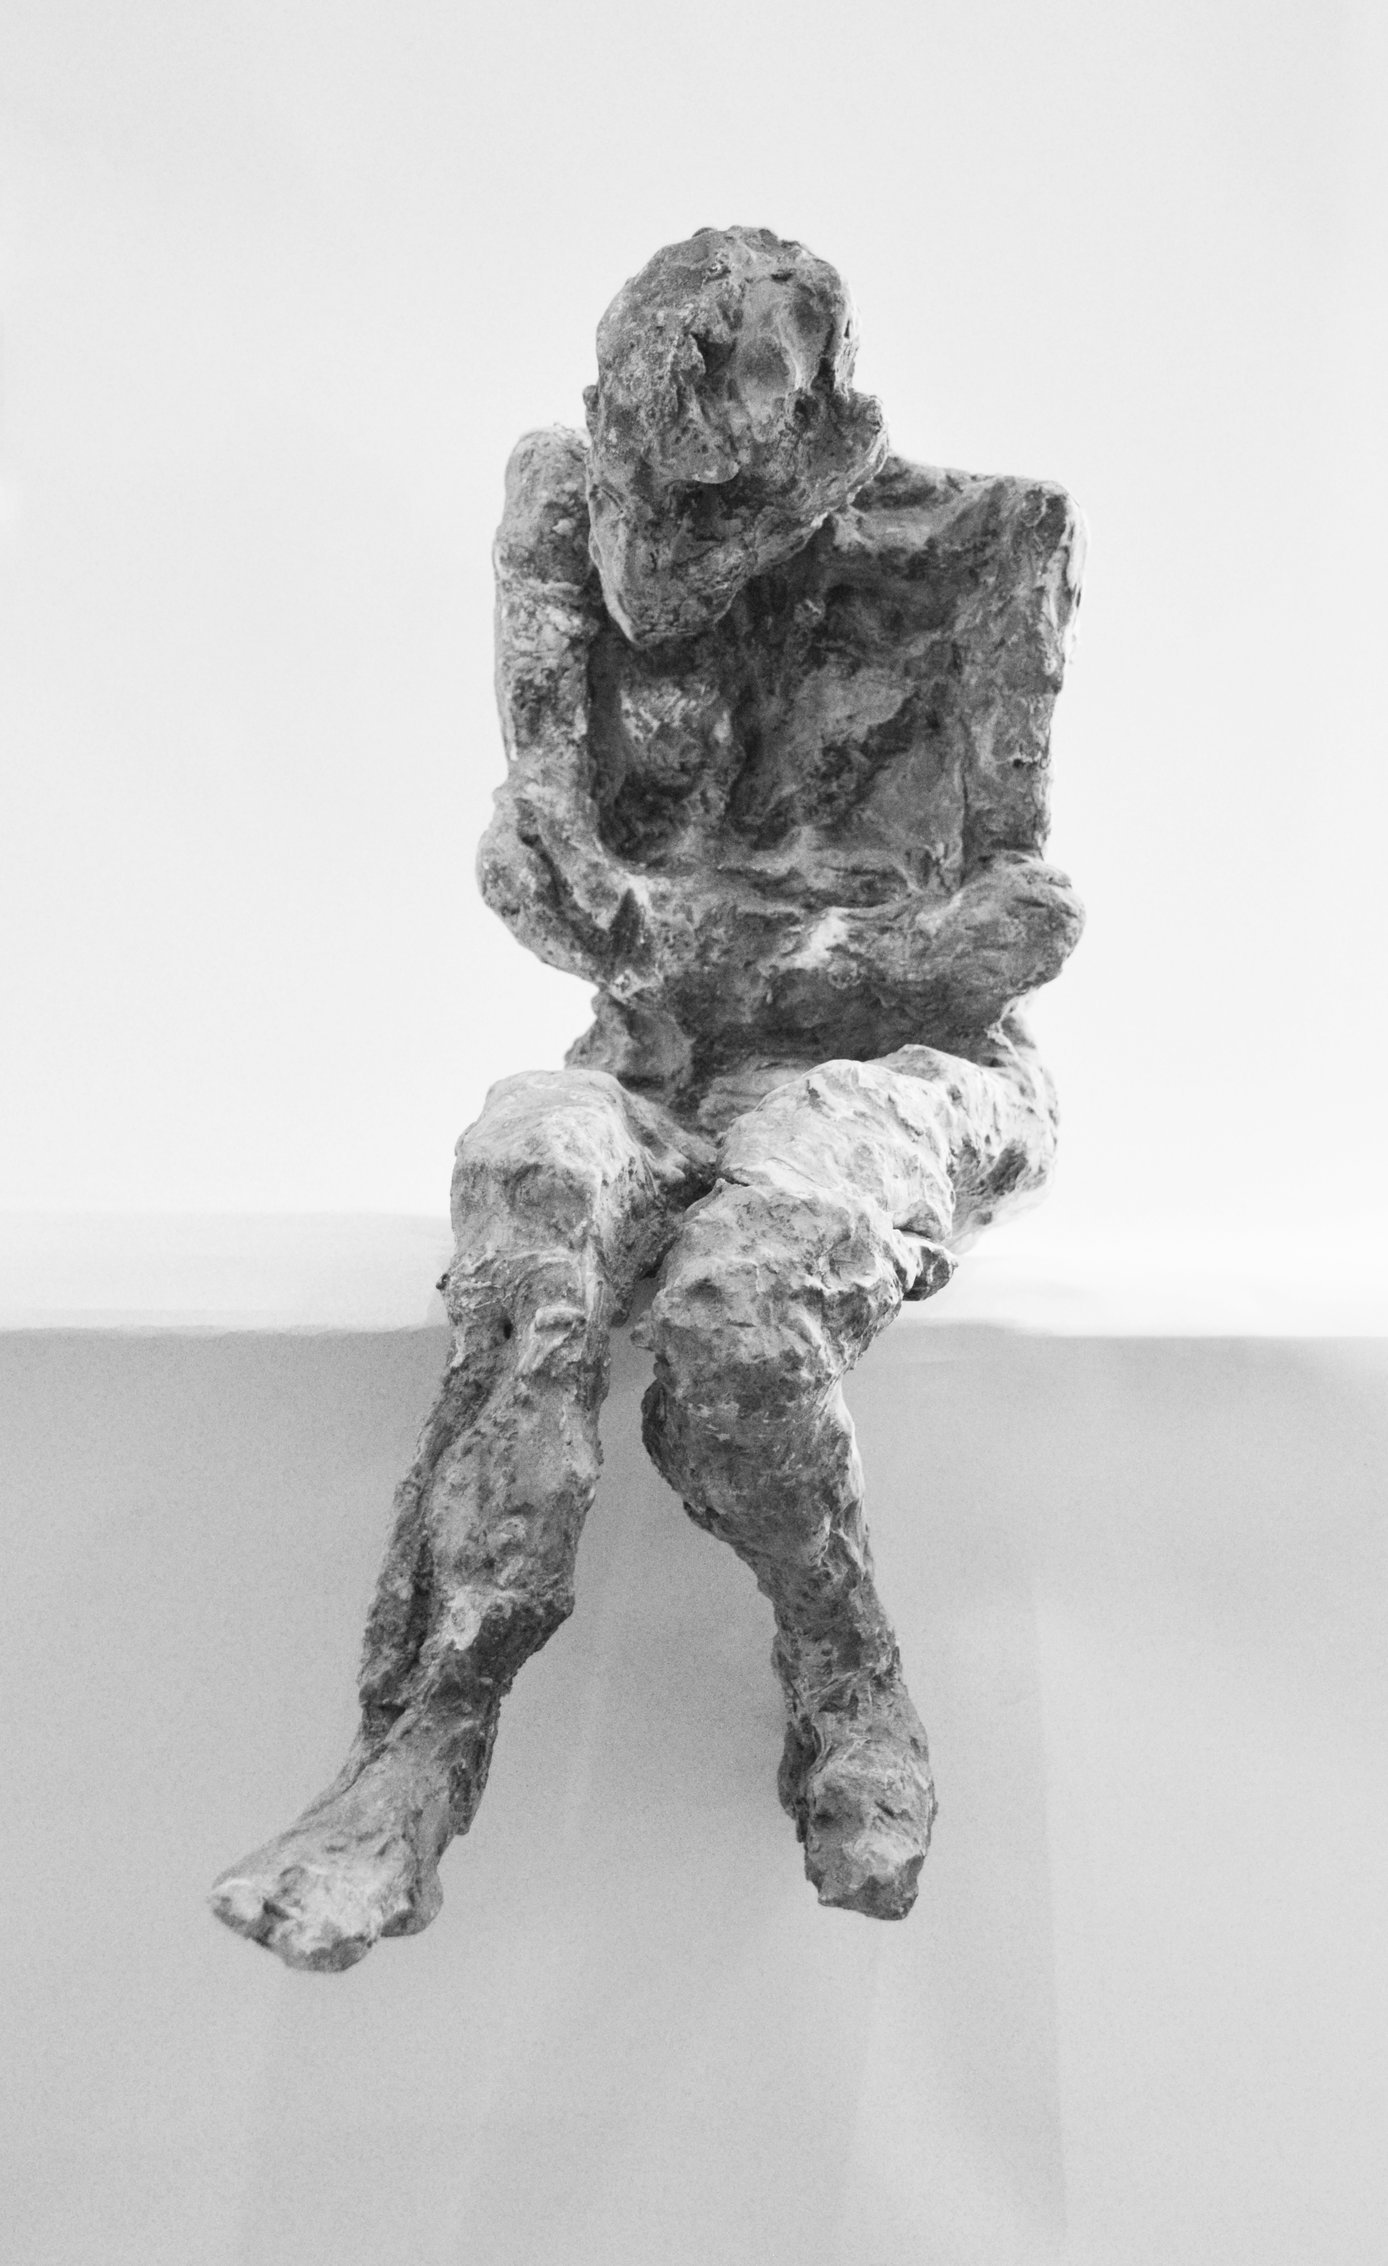 sitting sculpture Iivjpg.jpg